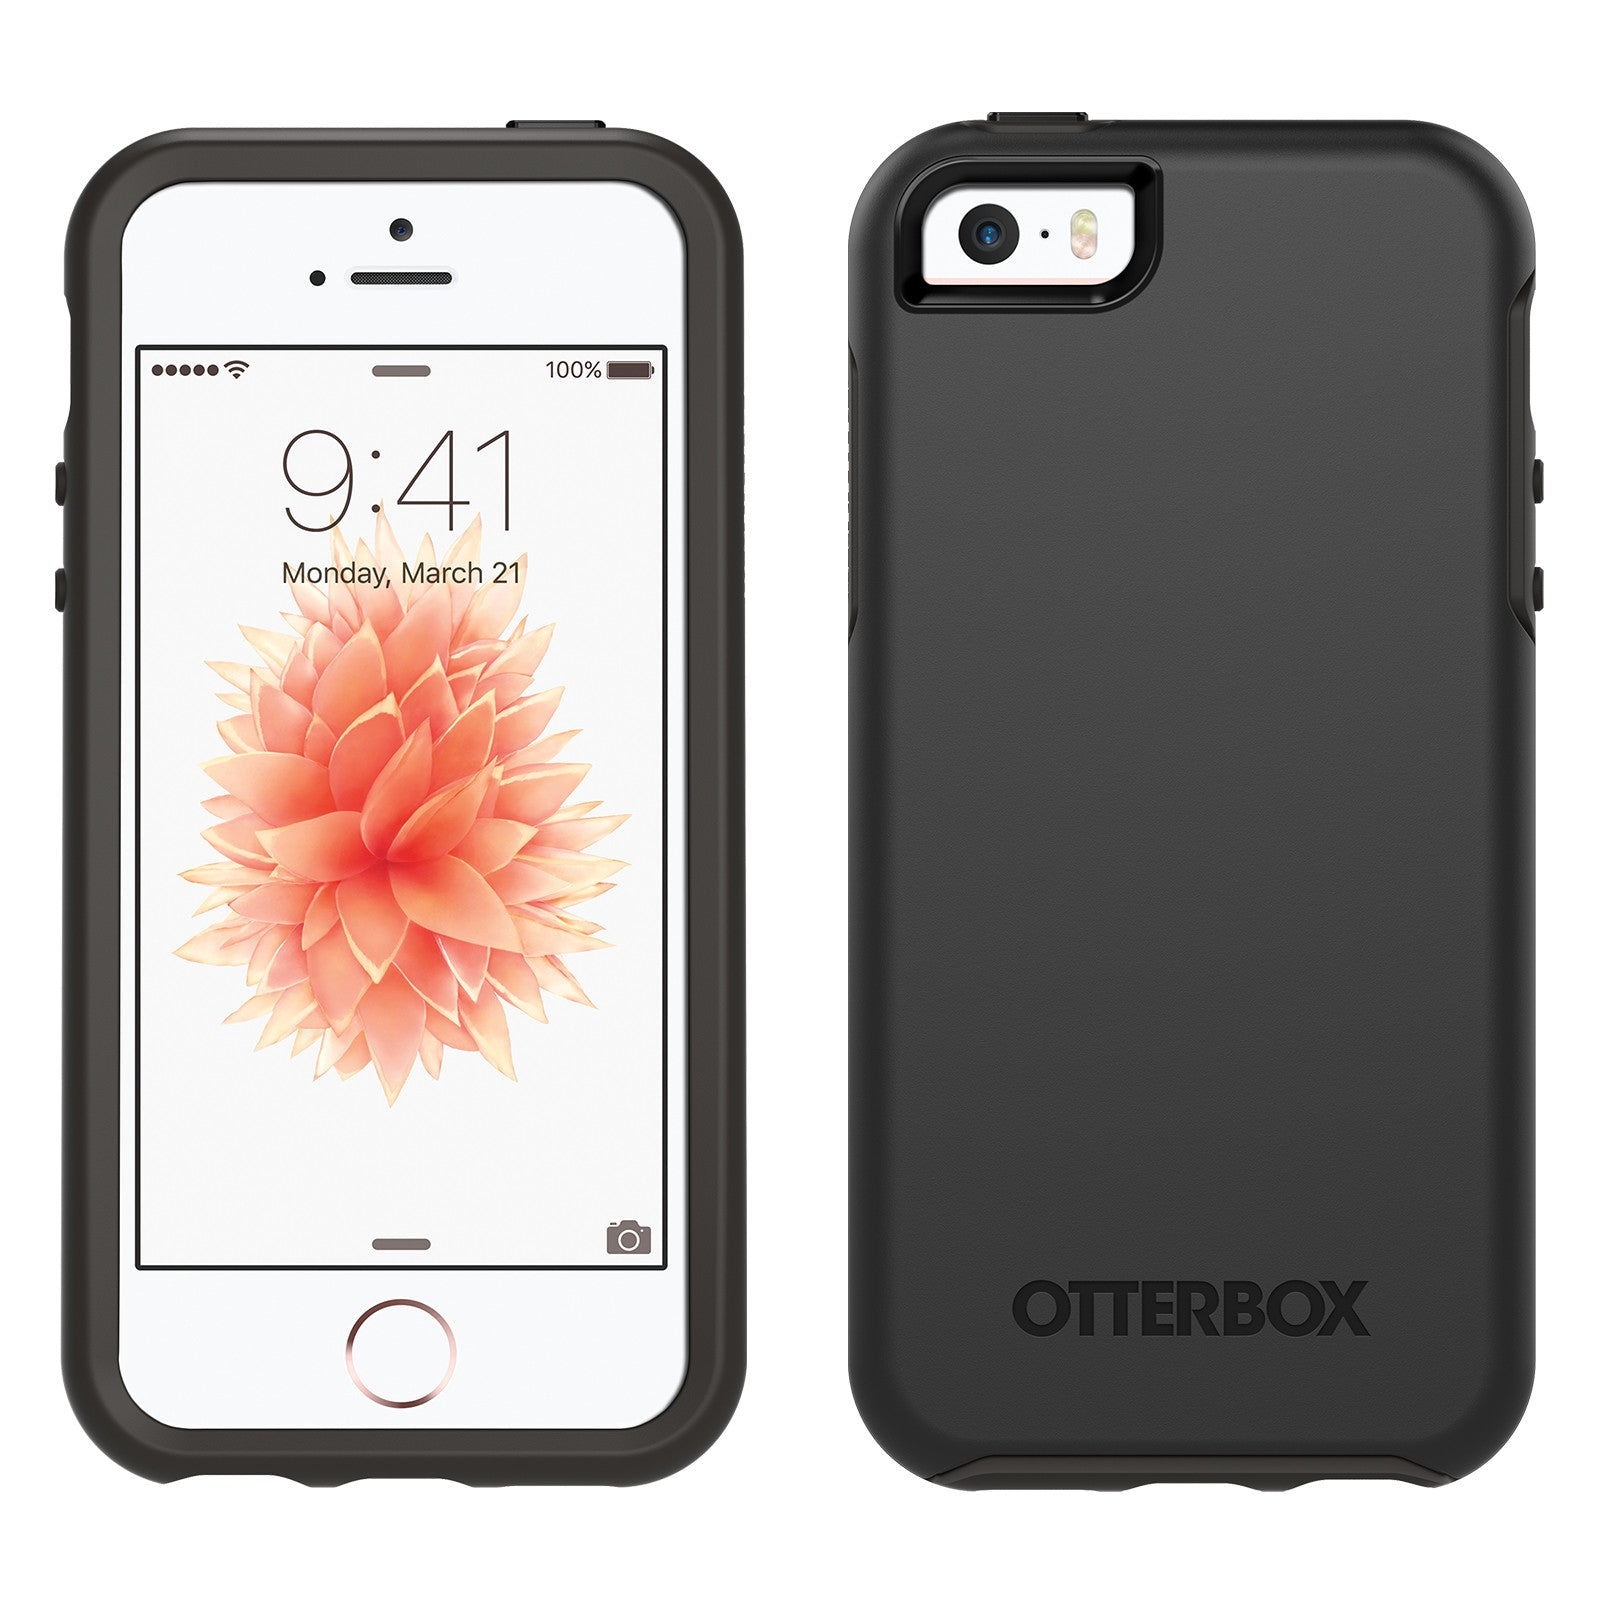 OtterBox Symmetry case for iPhone 5 5S SE - Black - Ryphone 2cd31b1d2b2a